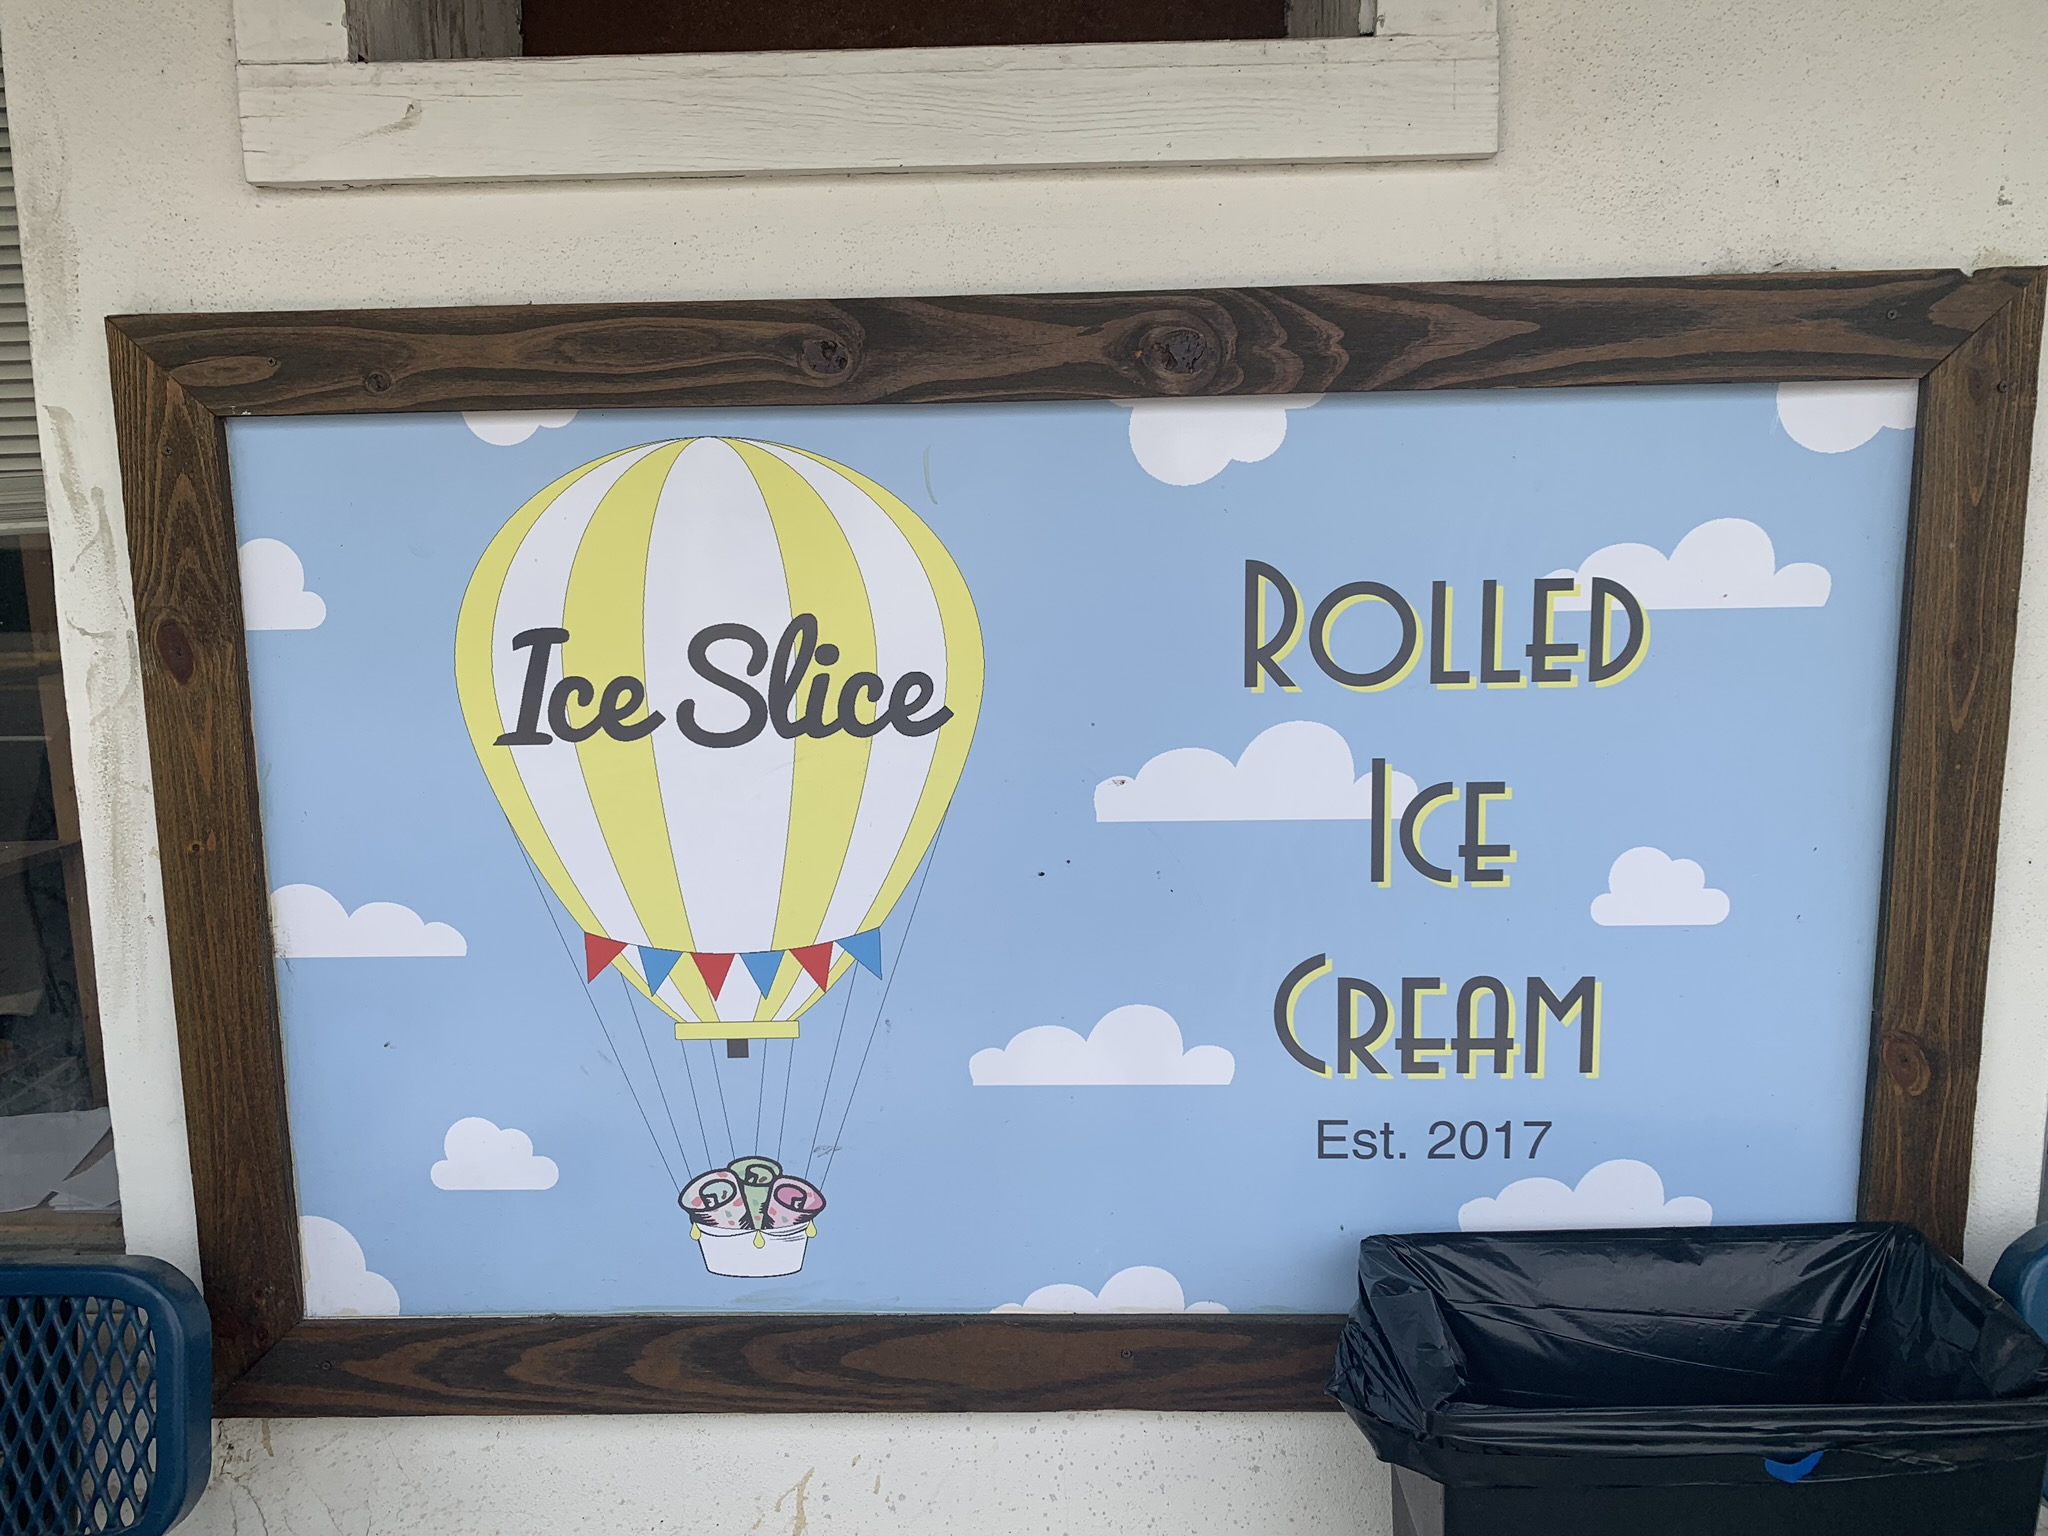 Ice Slice opened two years ago on Sycamore Street.